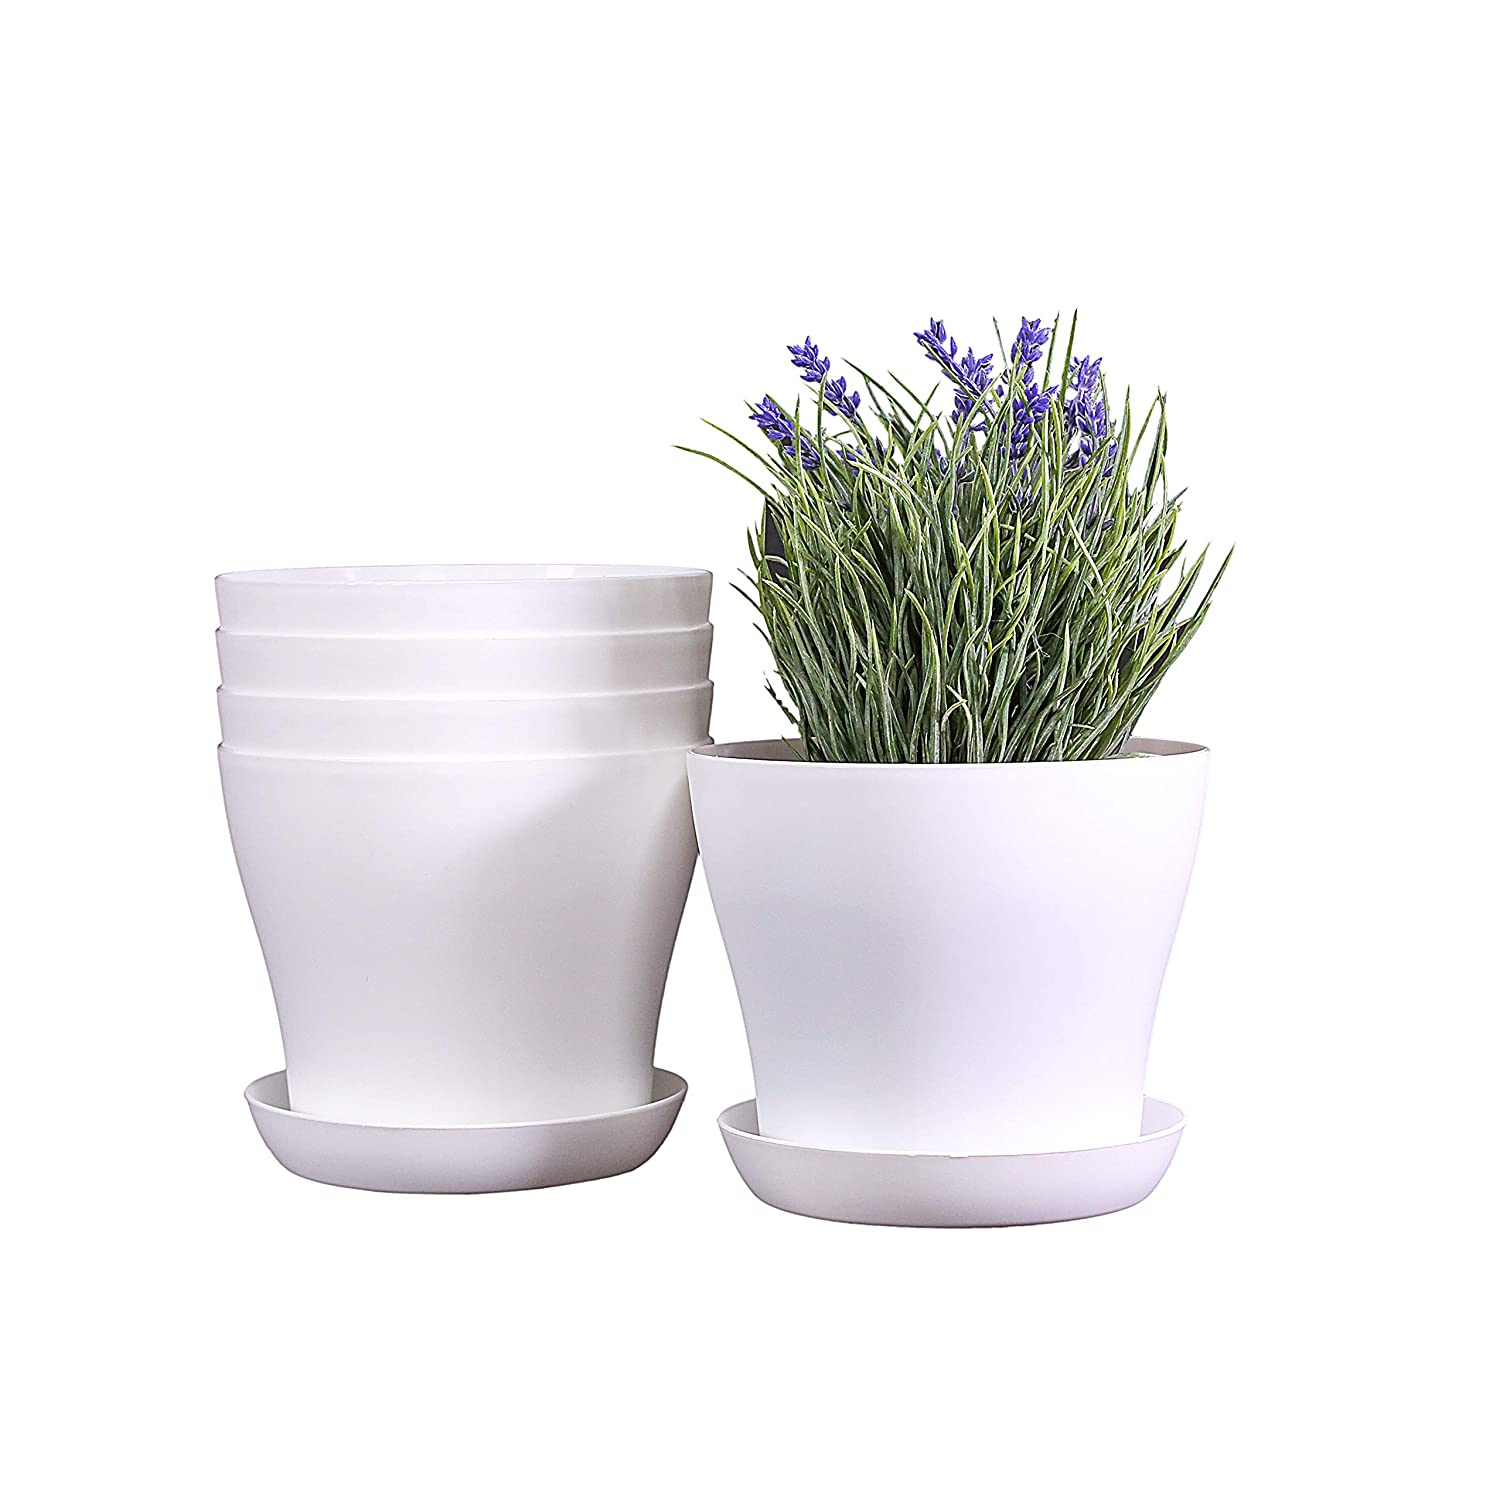 Smoofy 5 PCS Plastic Plant Pots, Plastic Planters with Plant Saucers, Indoor Set of Modern Decorative, Gardening Pot with Drainage for All House Plants, Flowers, Cream White, 6.7 Inch